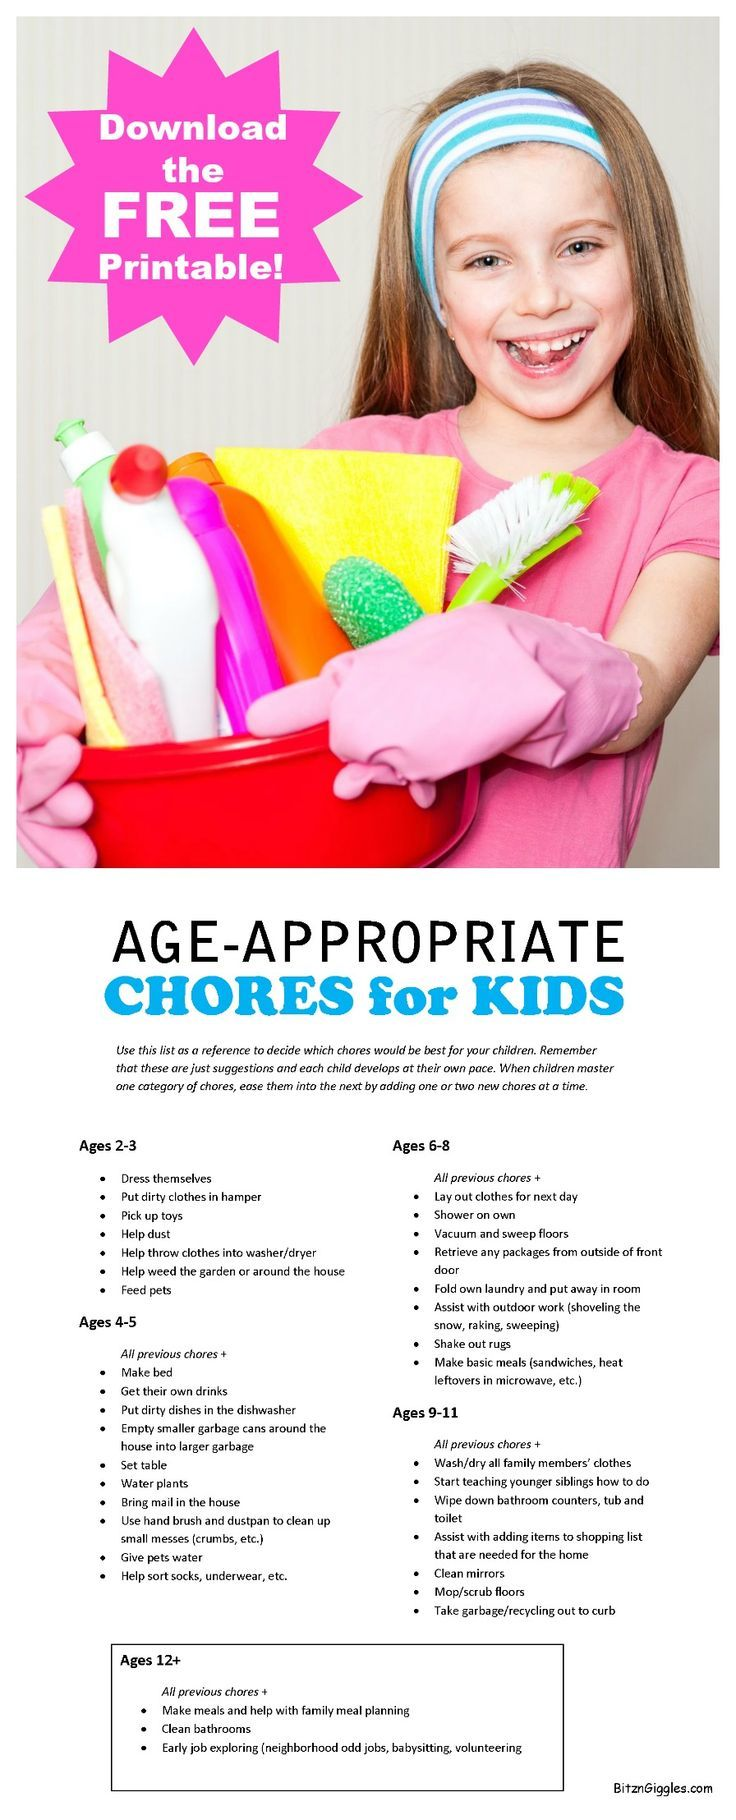 the best and worst in doing house chores That said, doing house chores doesn't need to be overwhelming once you break down the tasks into daily, weekly, monthly, and seasonal lists, you'll see how little time it actually takes to.